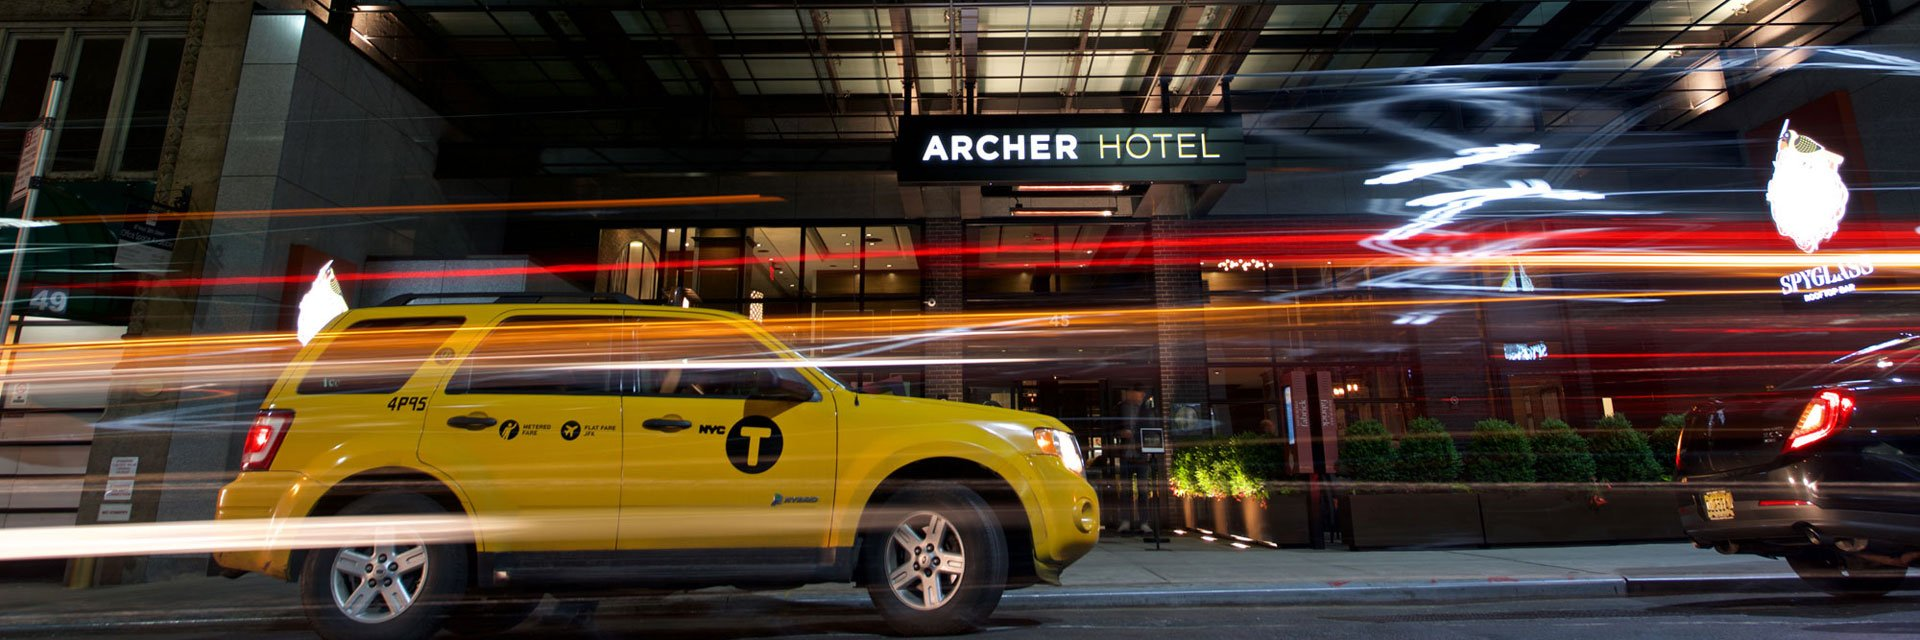 Cars passing in front of Archer Hotel New York's Entrance